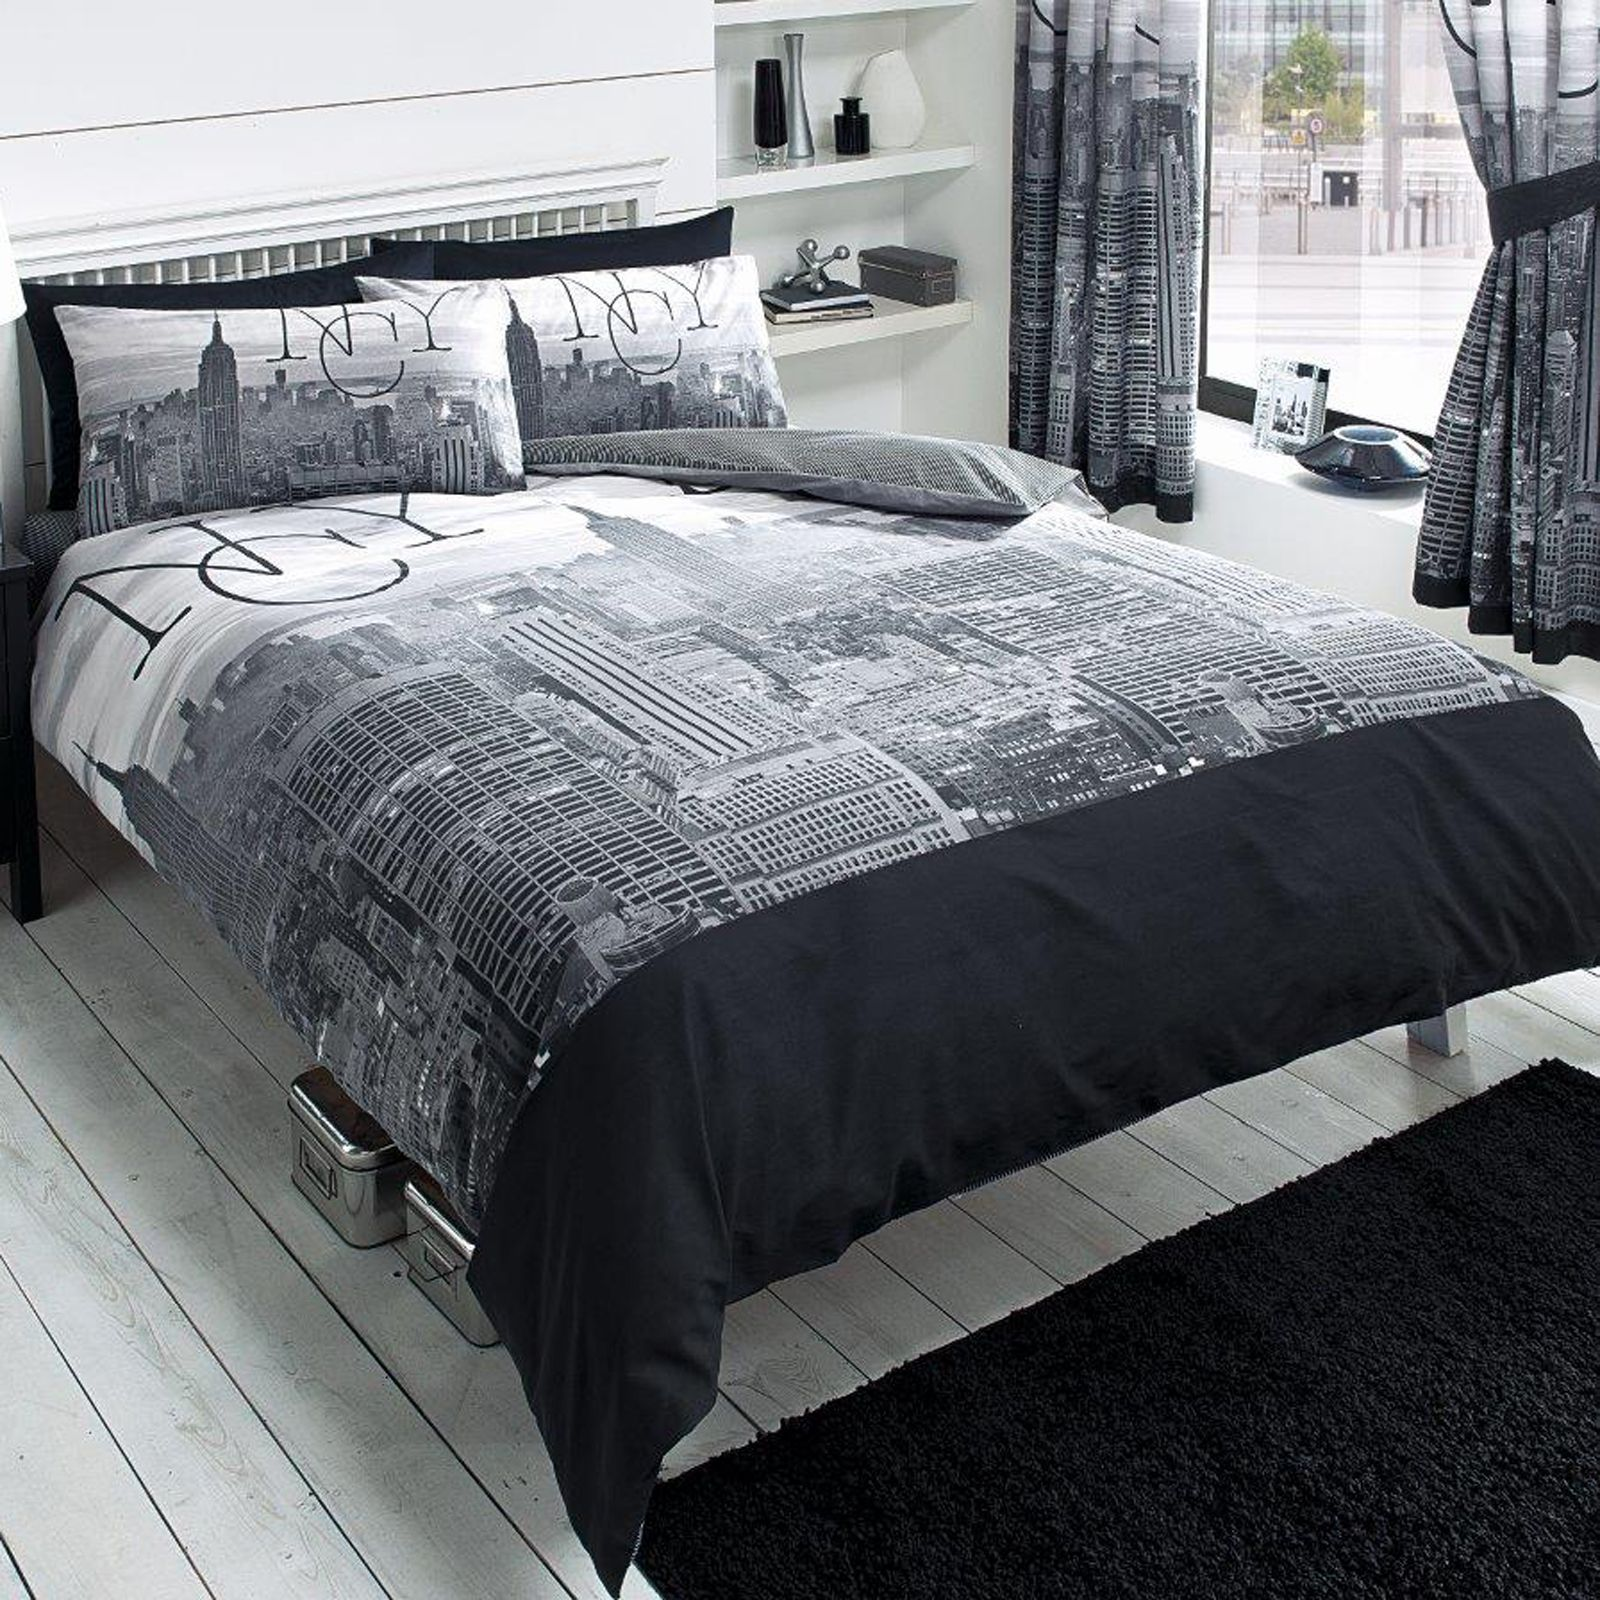 world cities duvet cover sets available in single amp double